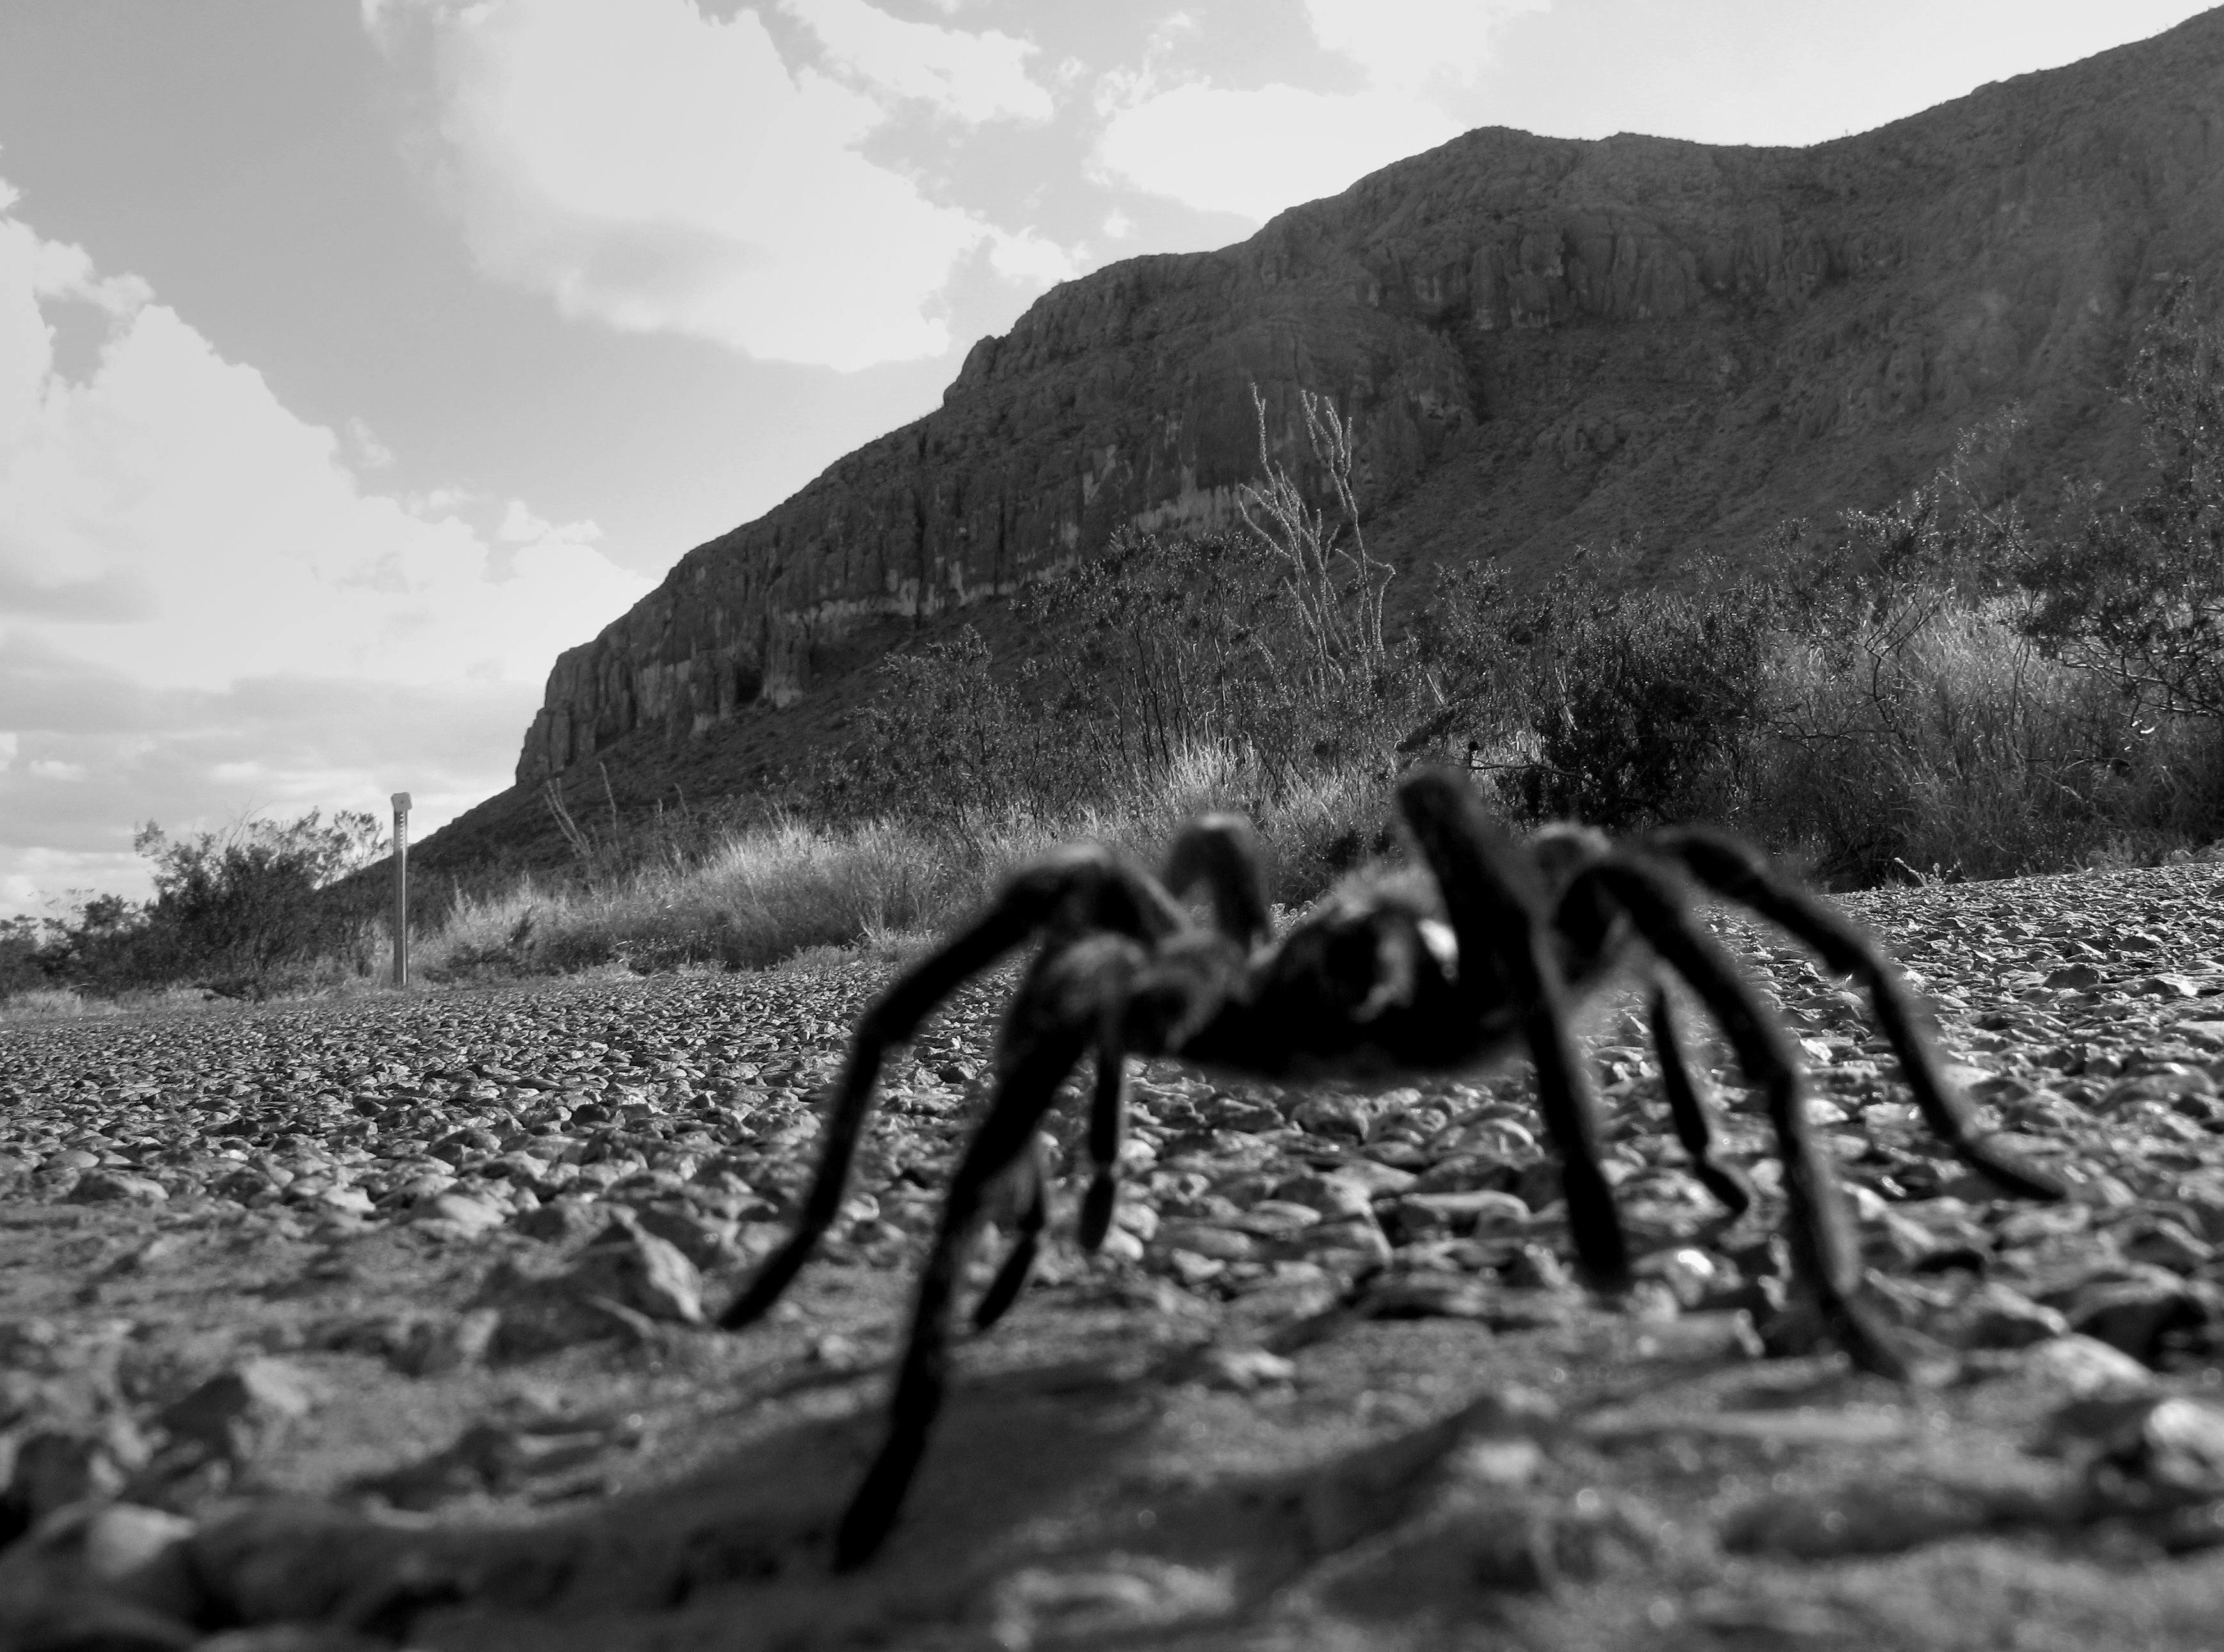 A close up of a tarantula on a road in the desert